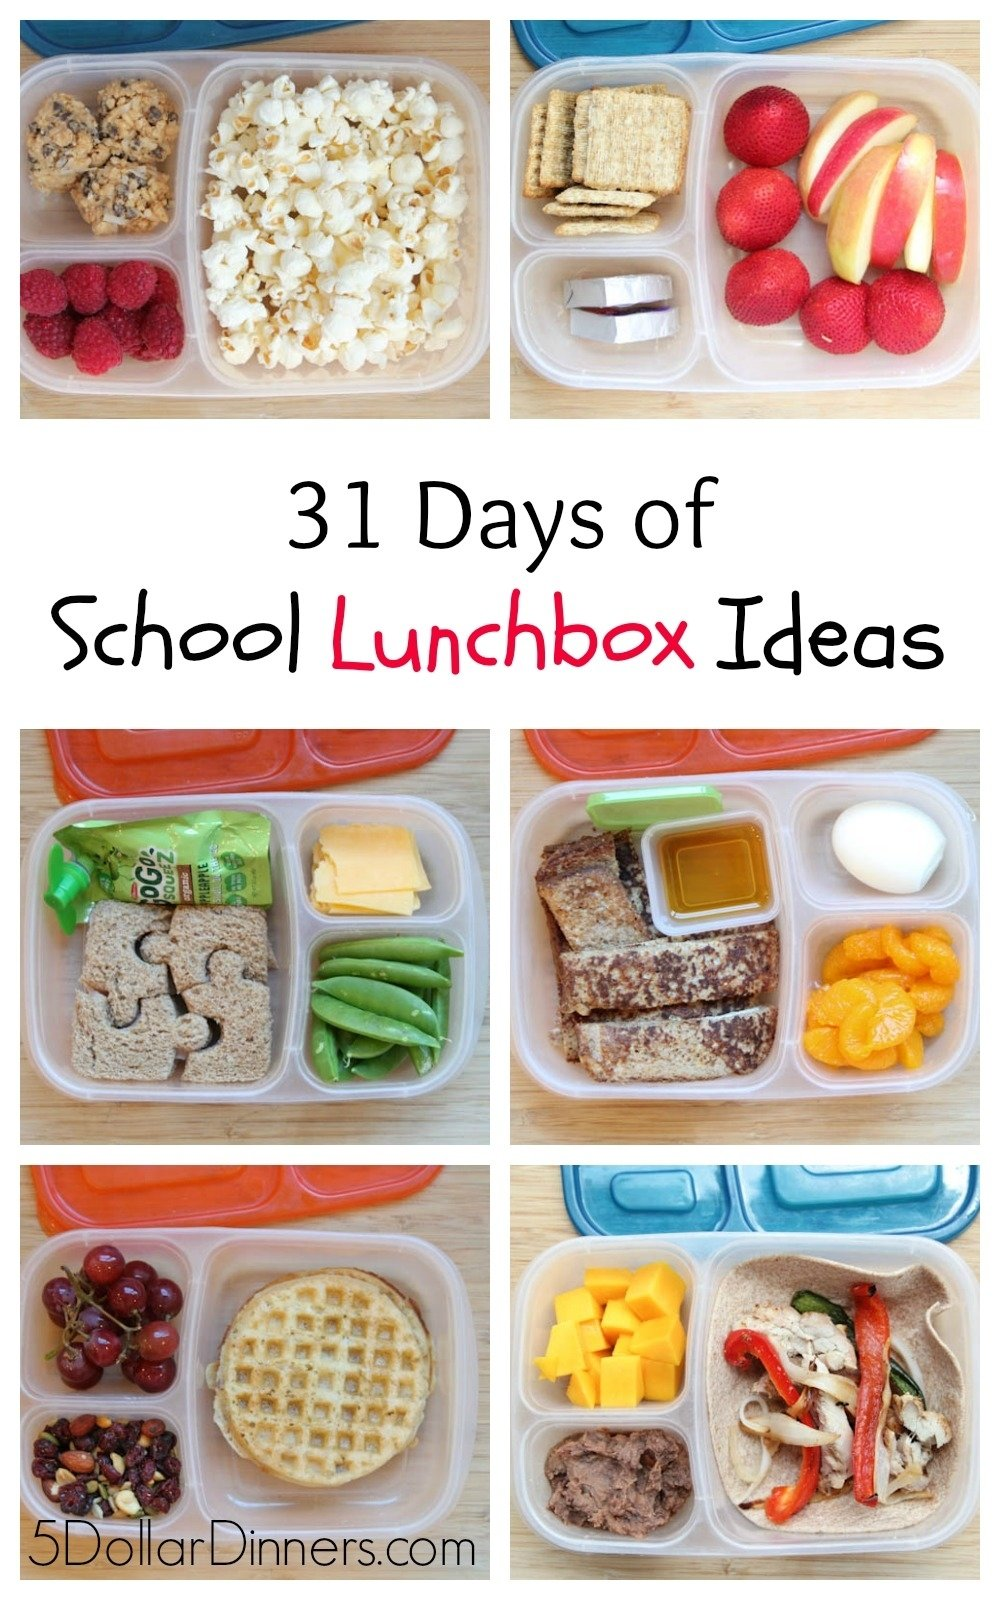 10 Nice Ideas For Kids Lunches For School 31 days of school lunchbox ideas sq 2021